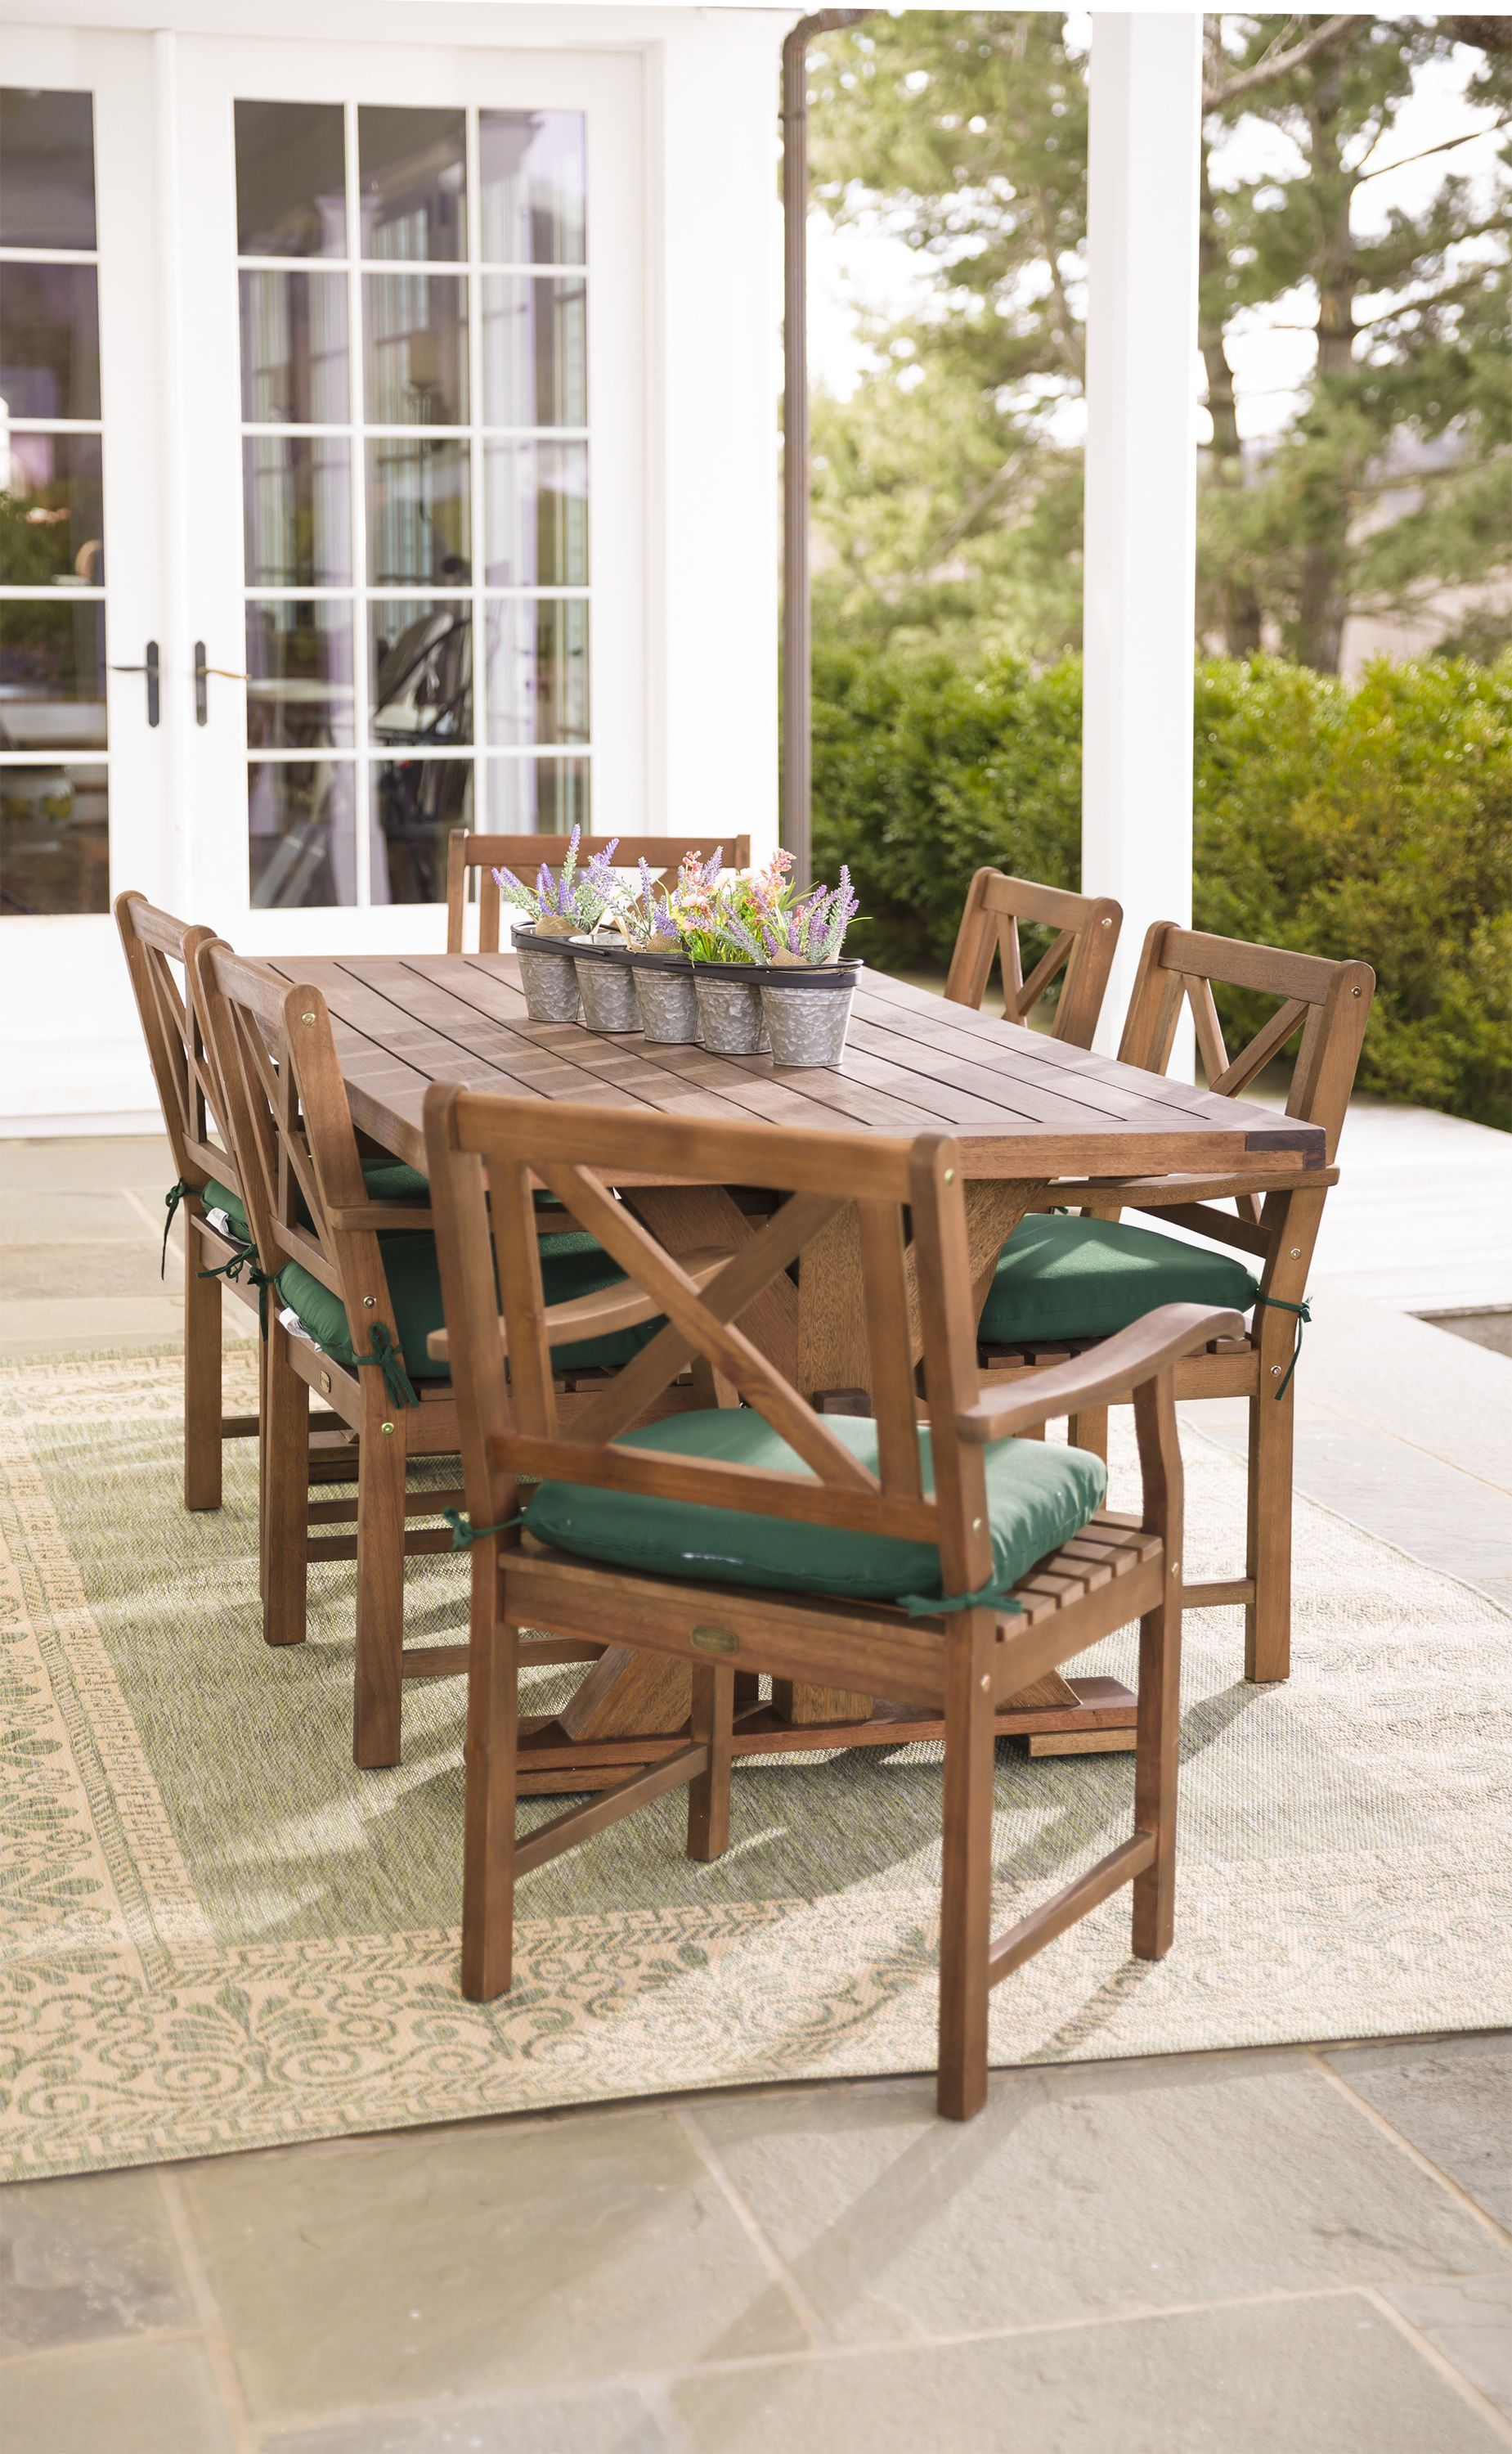 Claremont outdoor dining furniture elevates your outdoor entertaining space made of fsc certified eucalyptus grandis sustainable and sturdy with a bonus